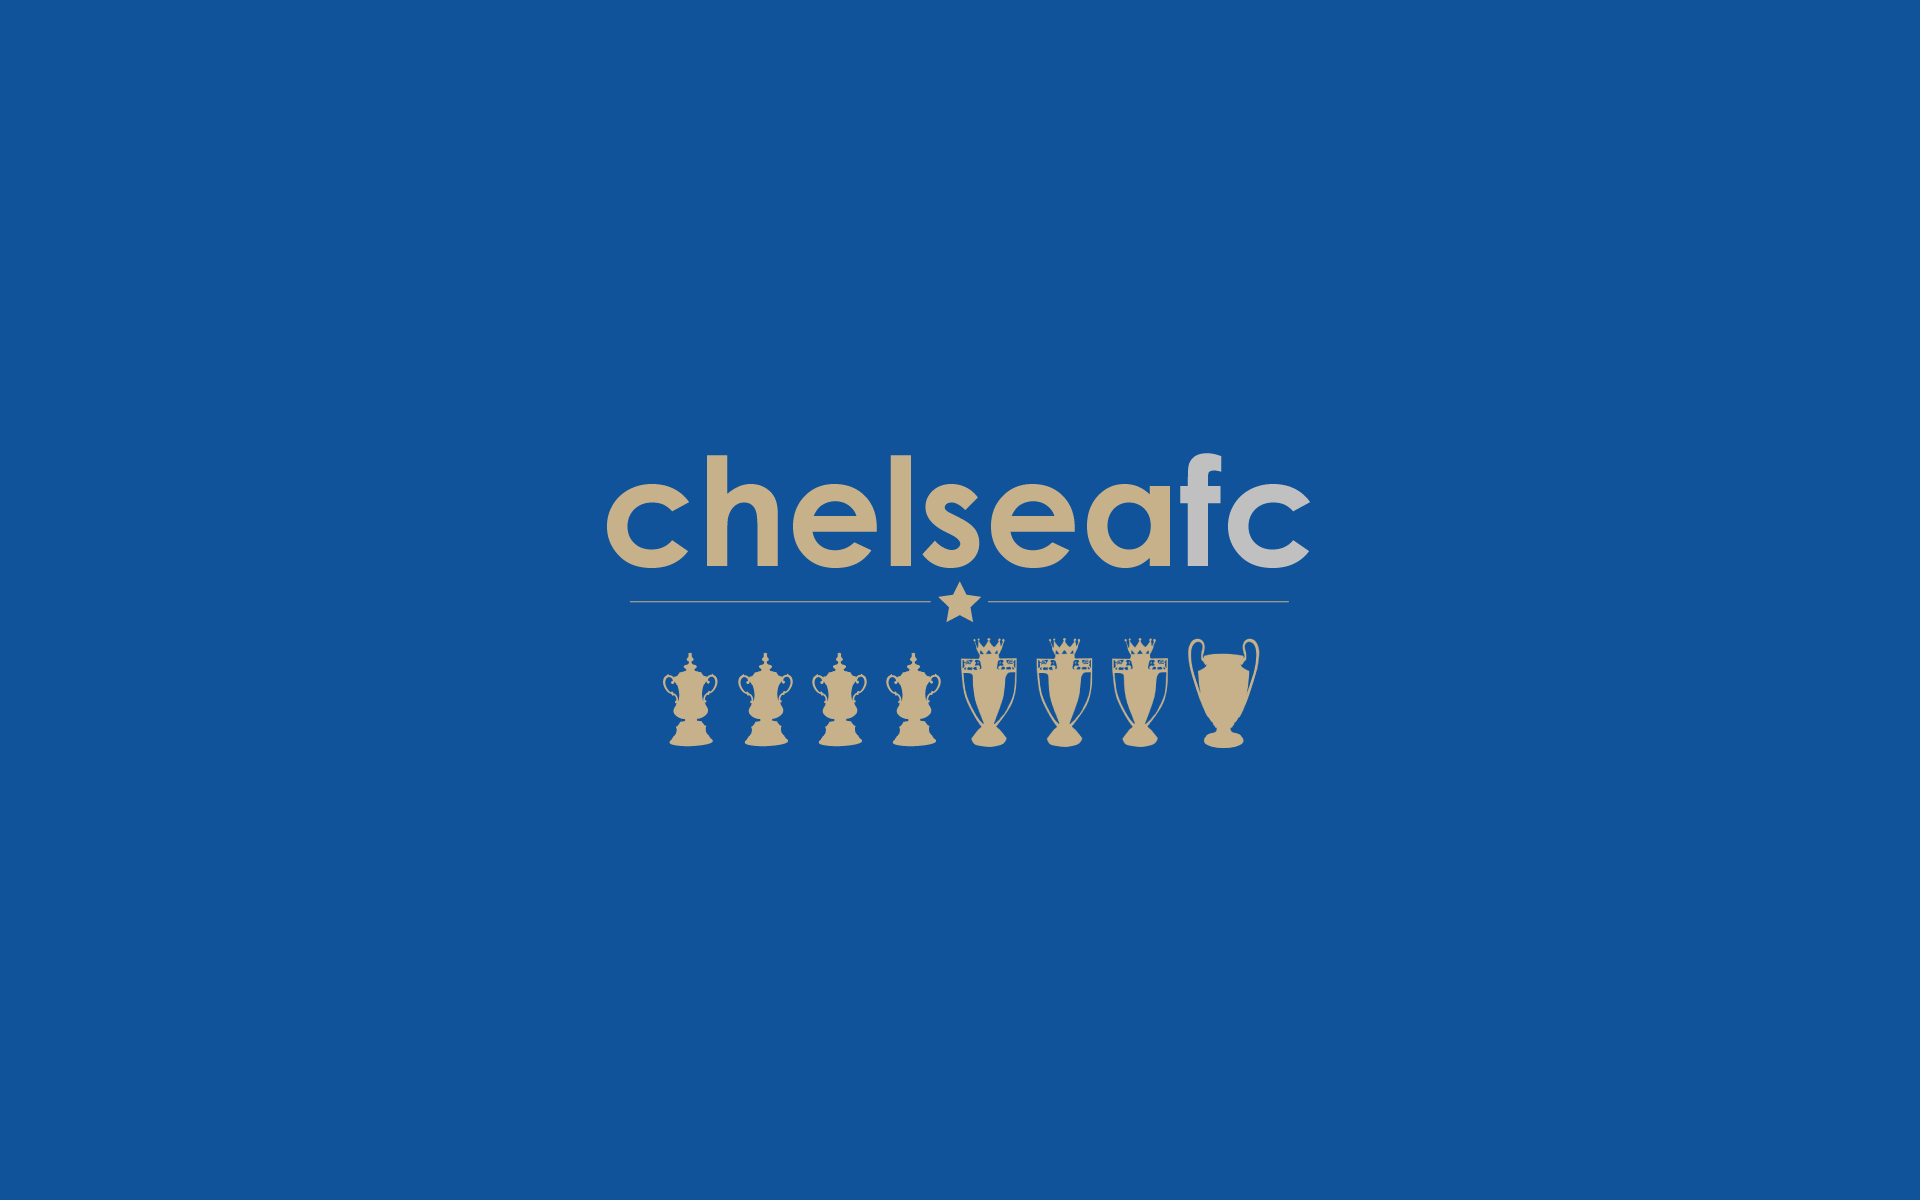 Free Download Chelsea Fc Wallpaper And Windows 81 Theme All